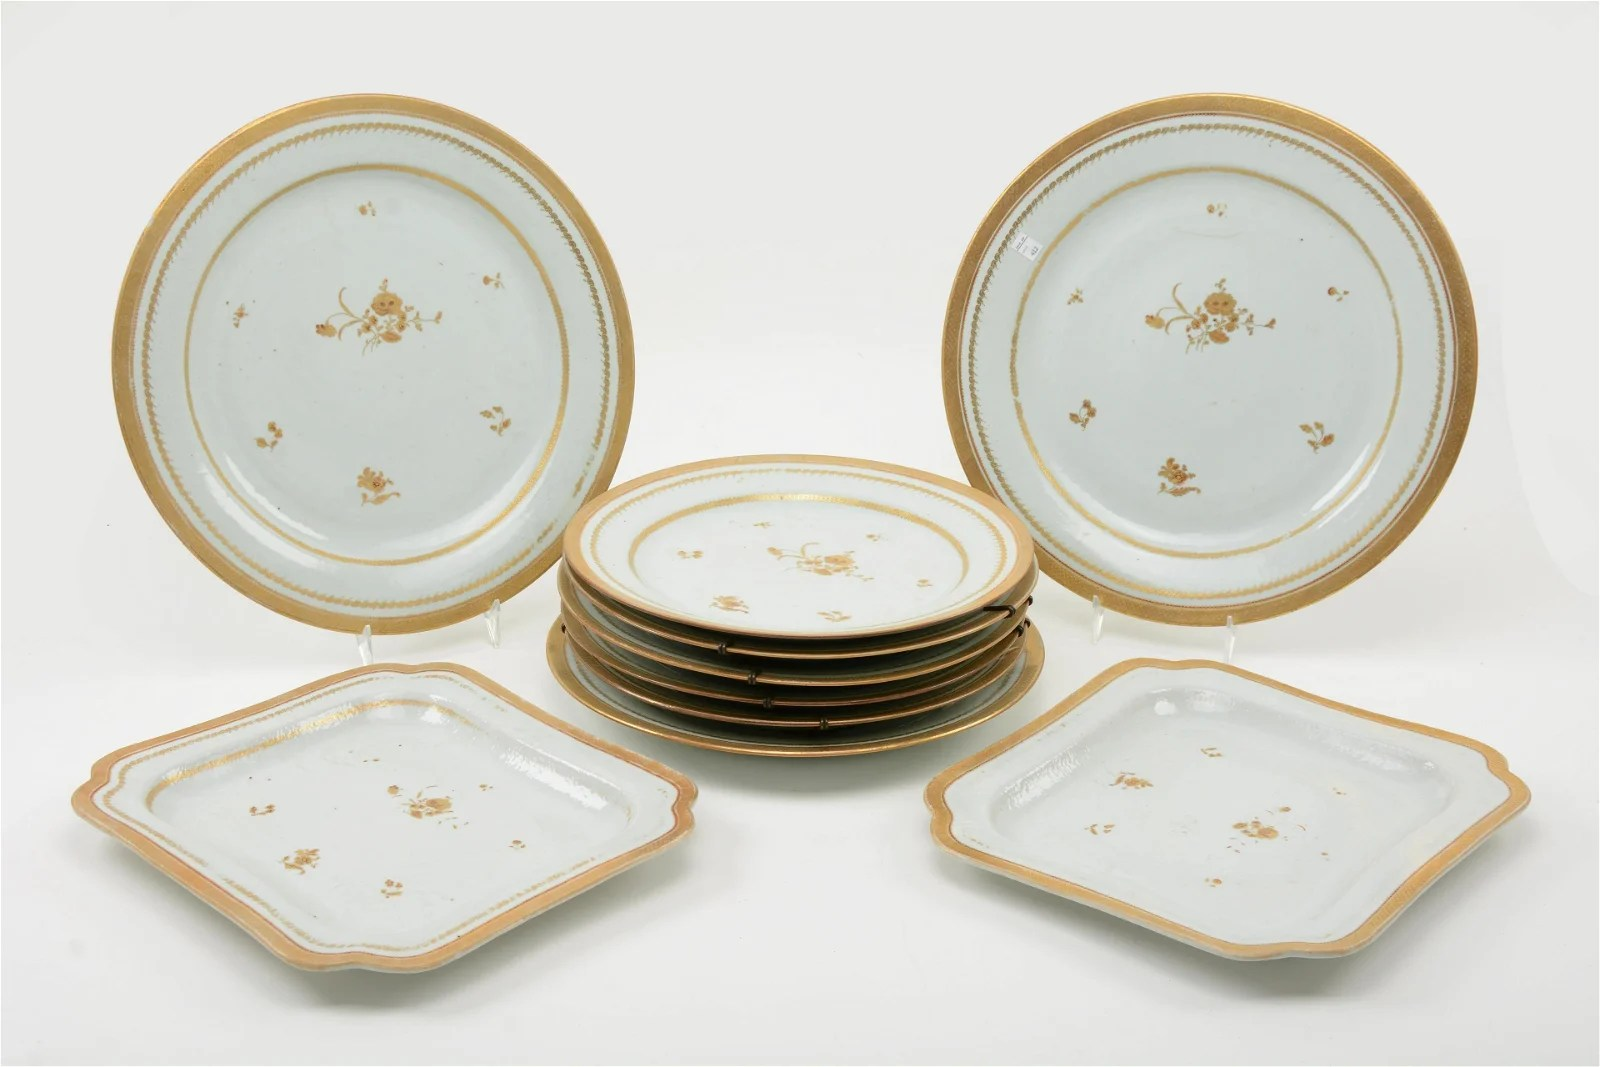 Chinese Export Porcelain Set, 18th/19th Century